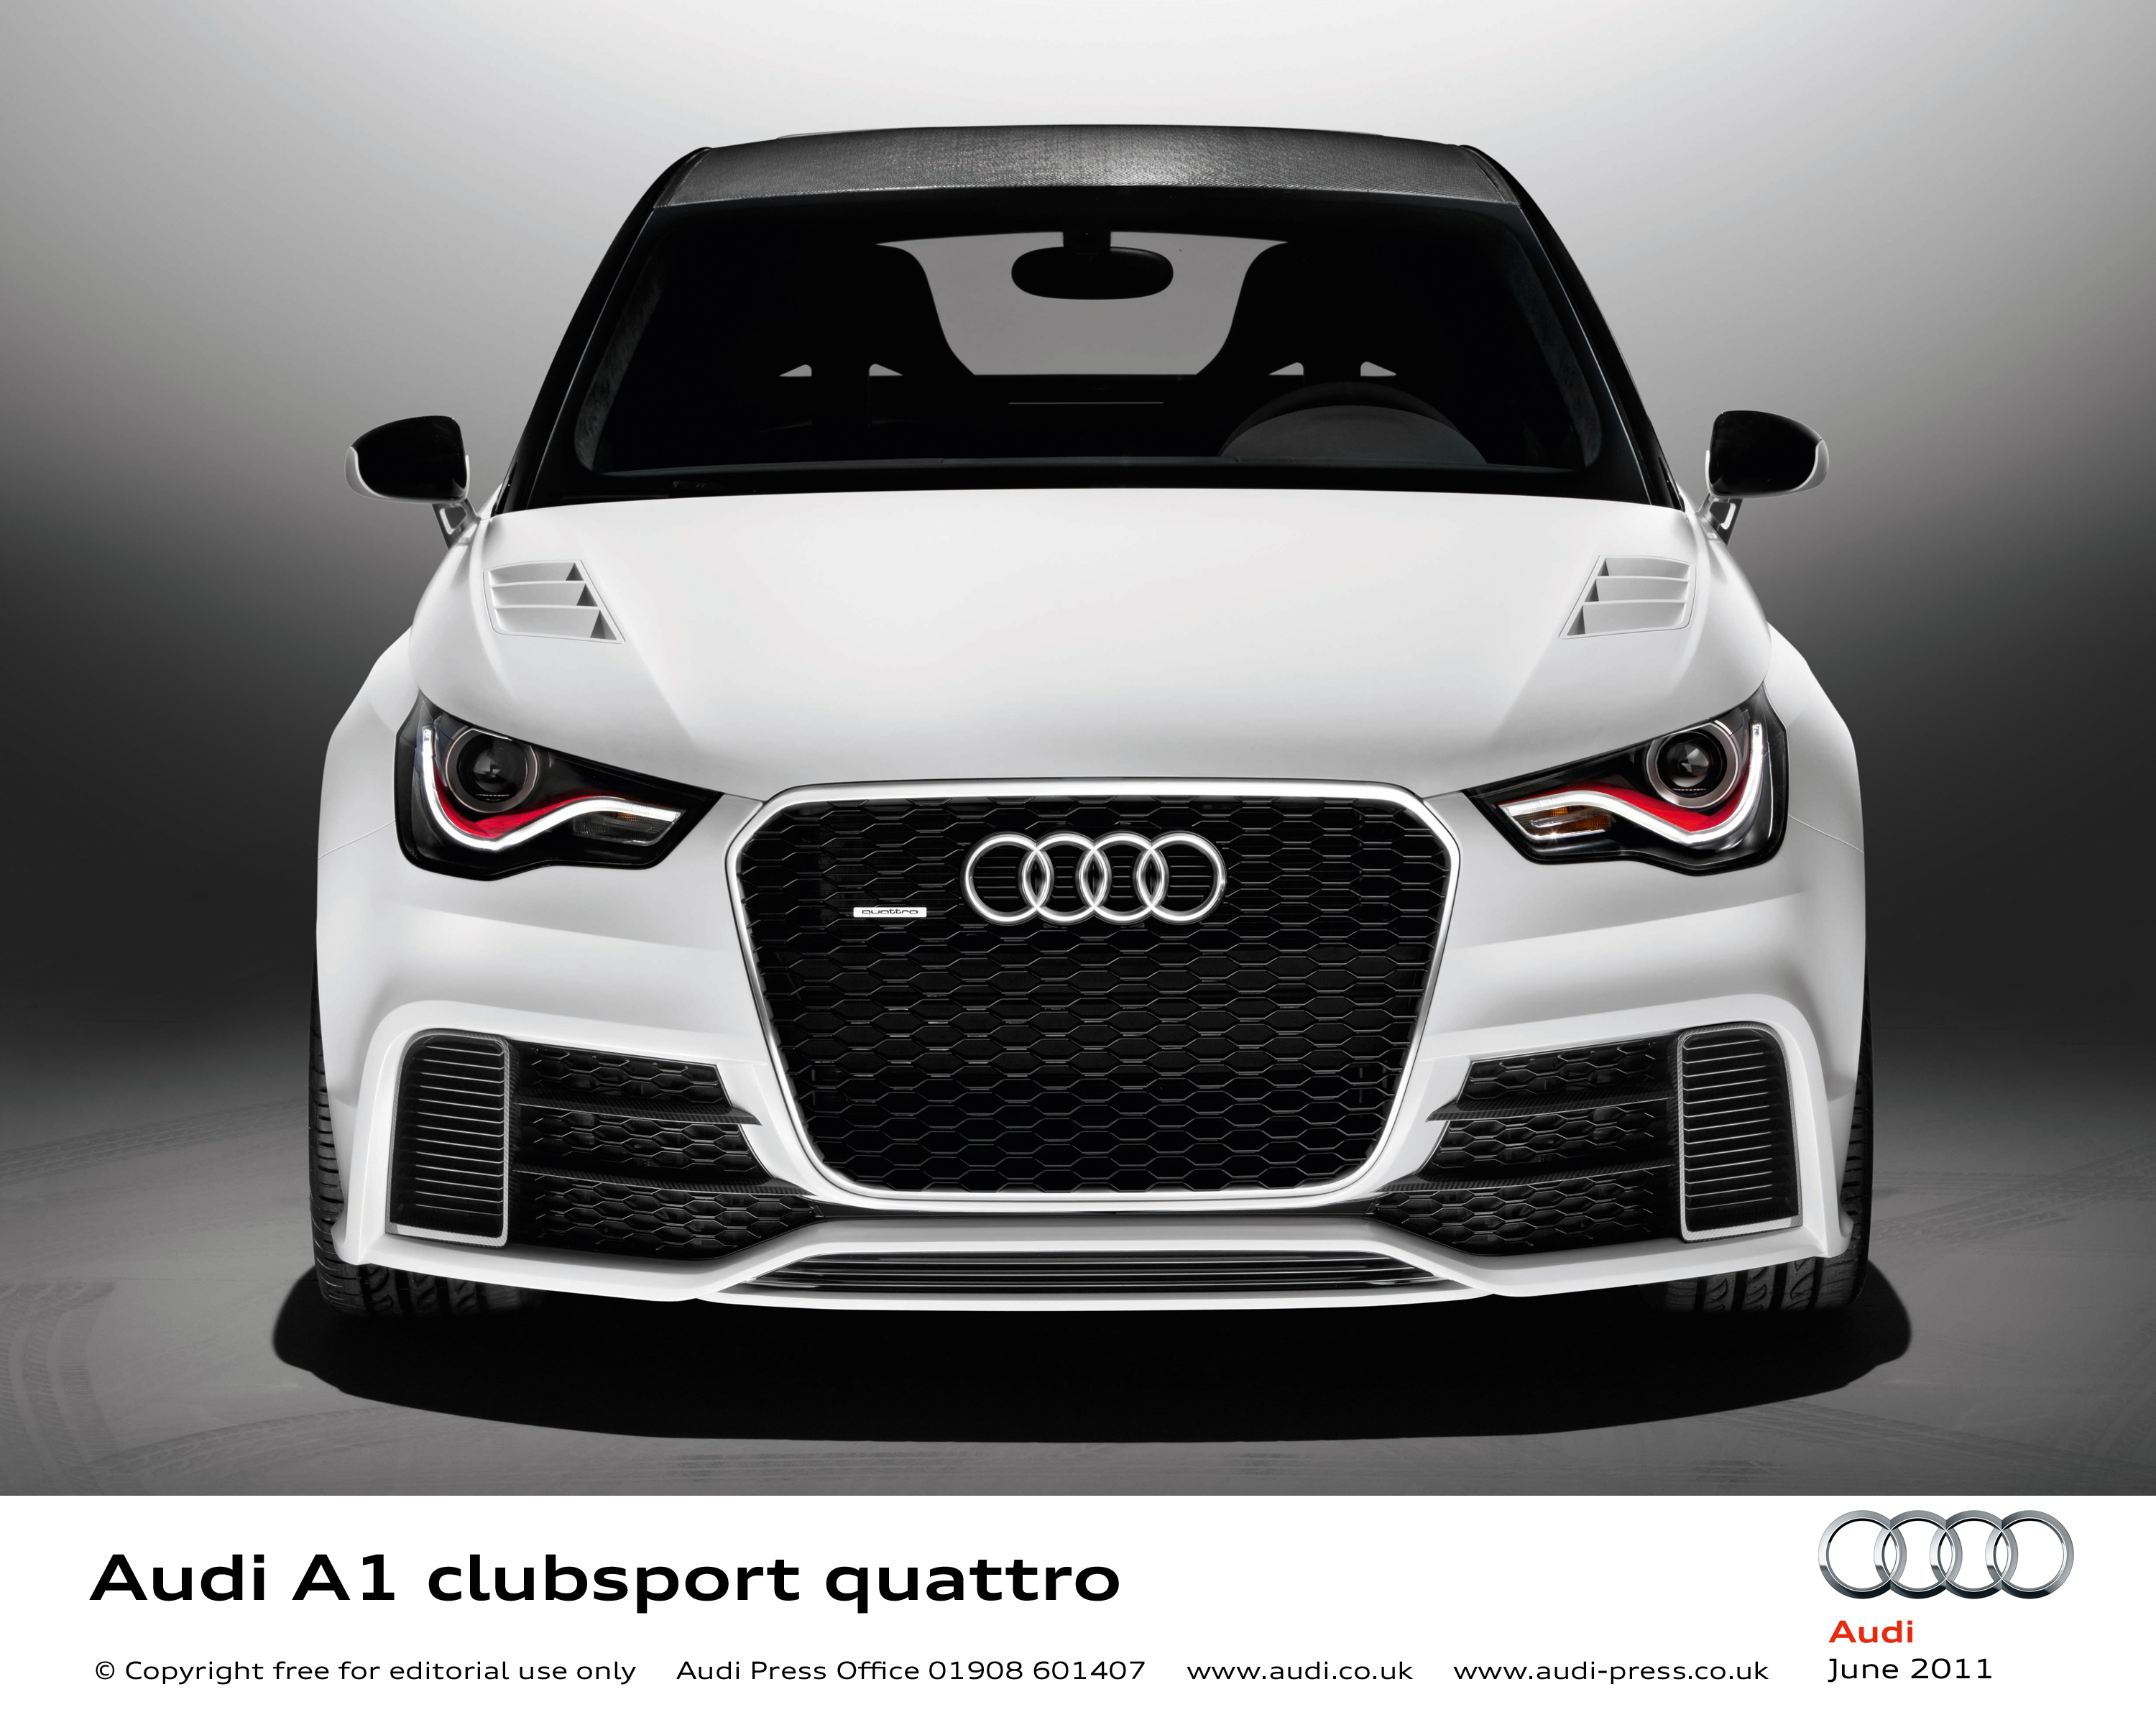 503ps Audi A1 Clubsport Quattro Wows Worthersee 2011